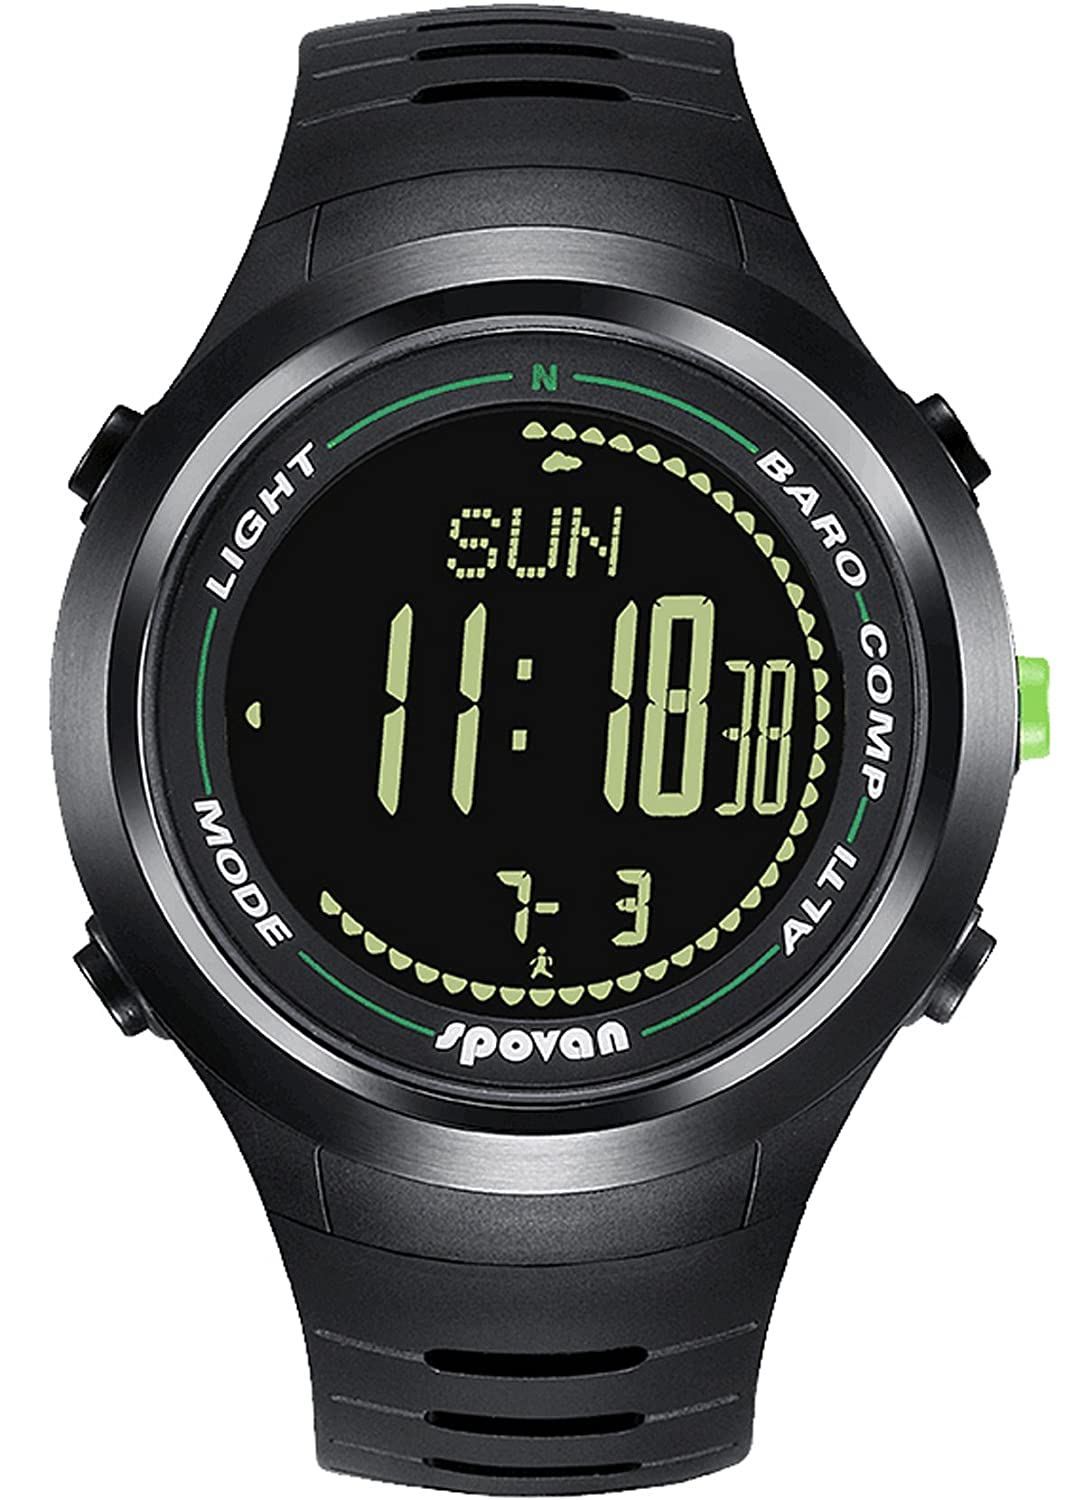 Spovan Digital Compass Altimeter Barometer Thermometer Outdoor Sports Fitness Watches Black